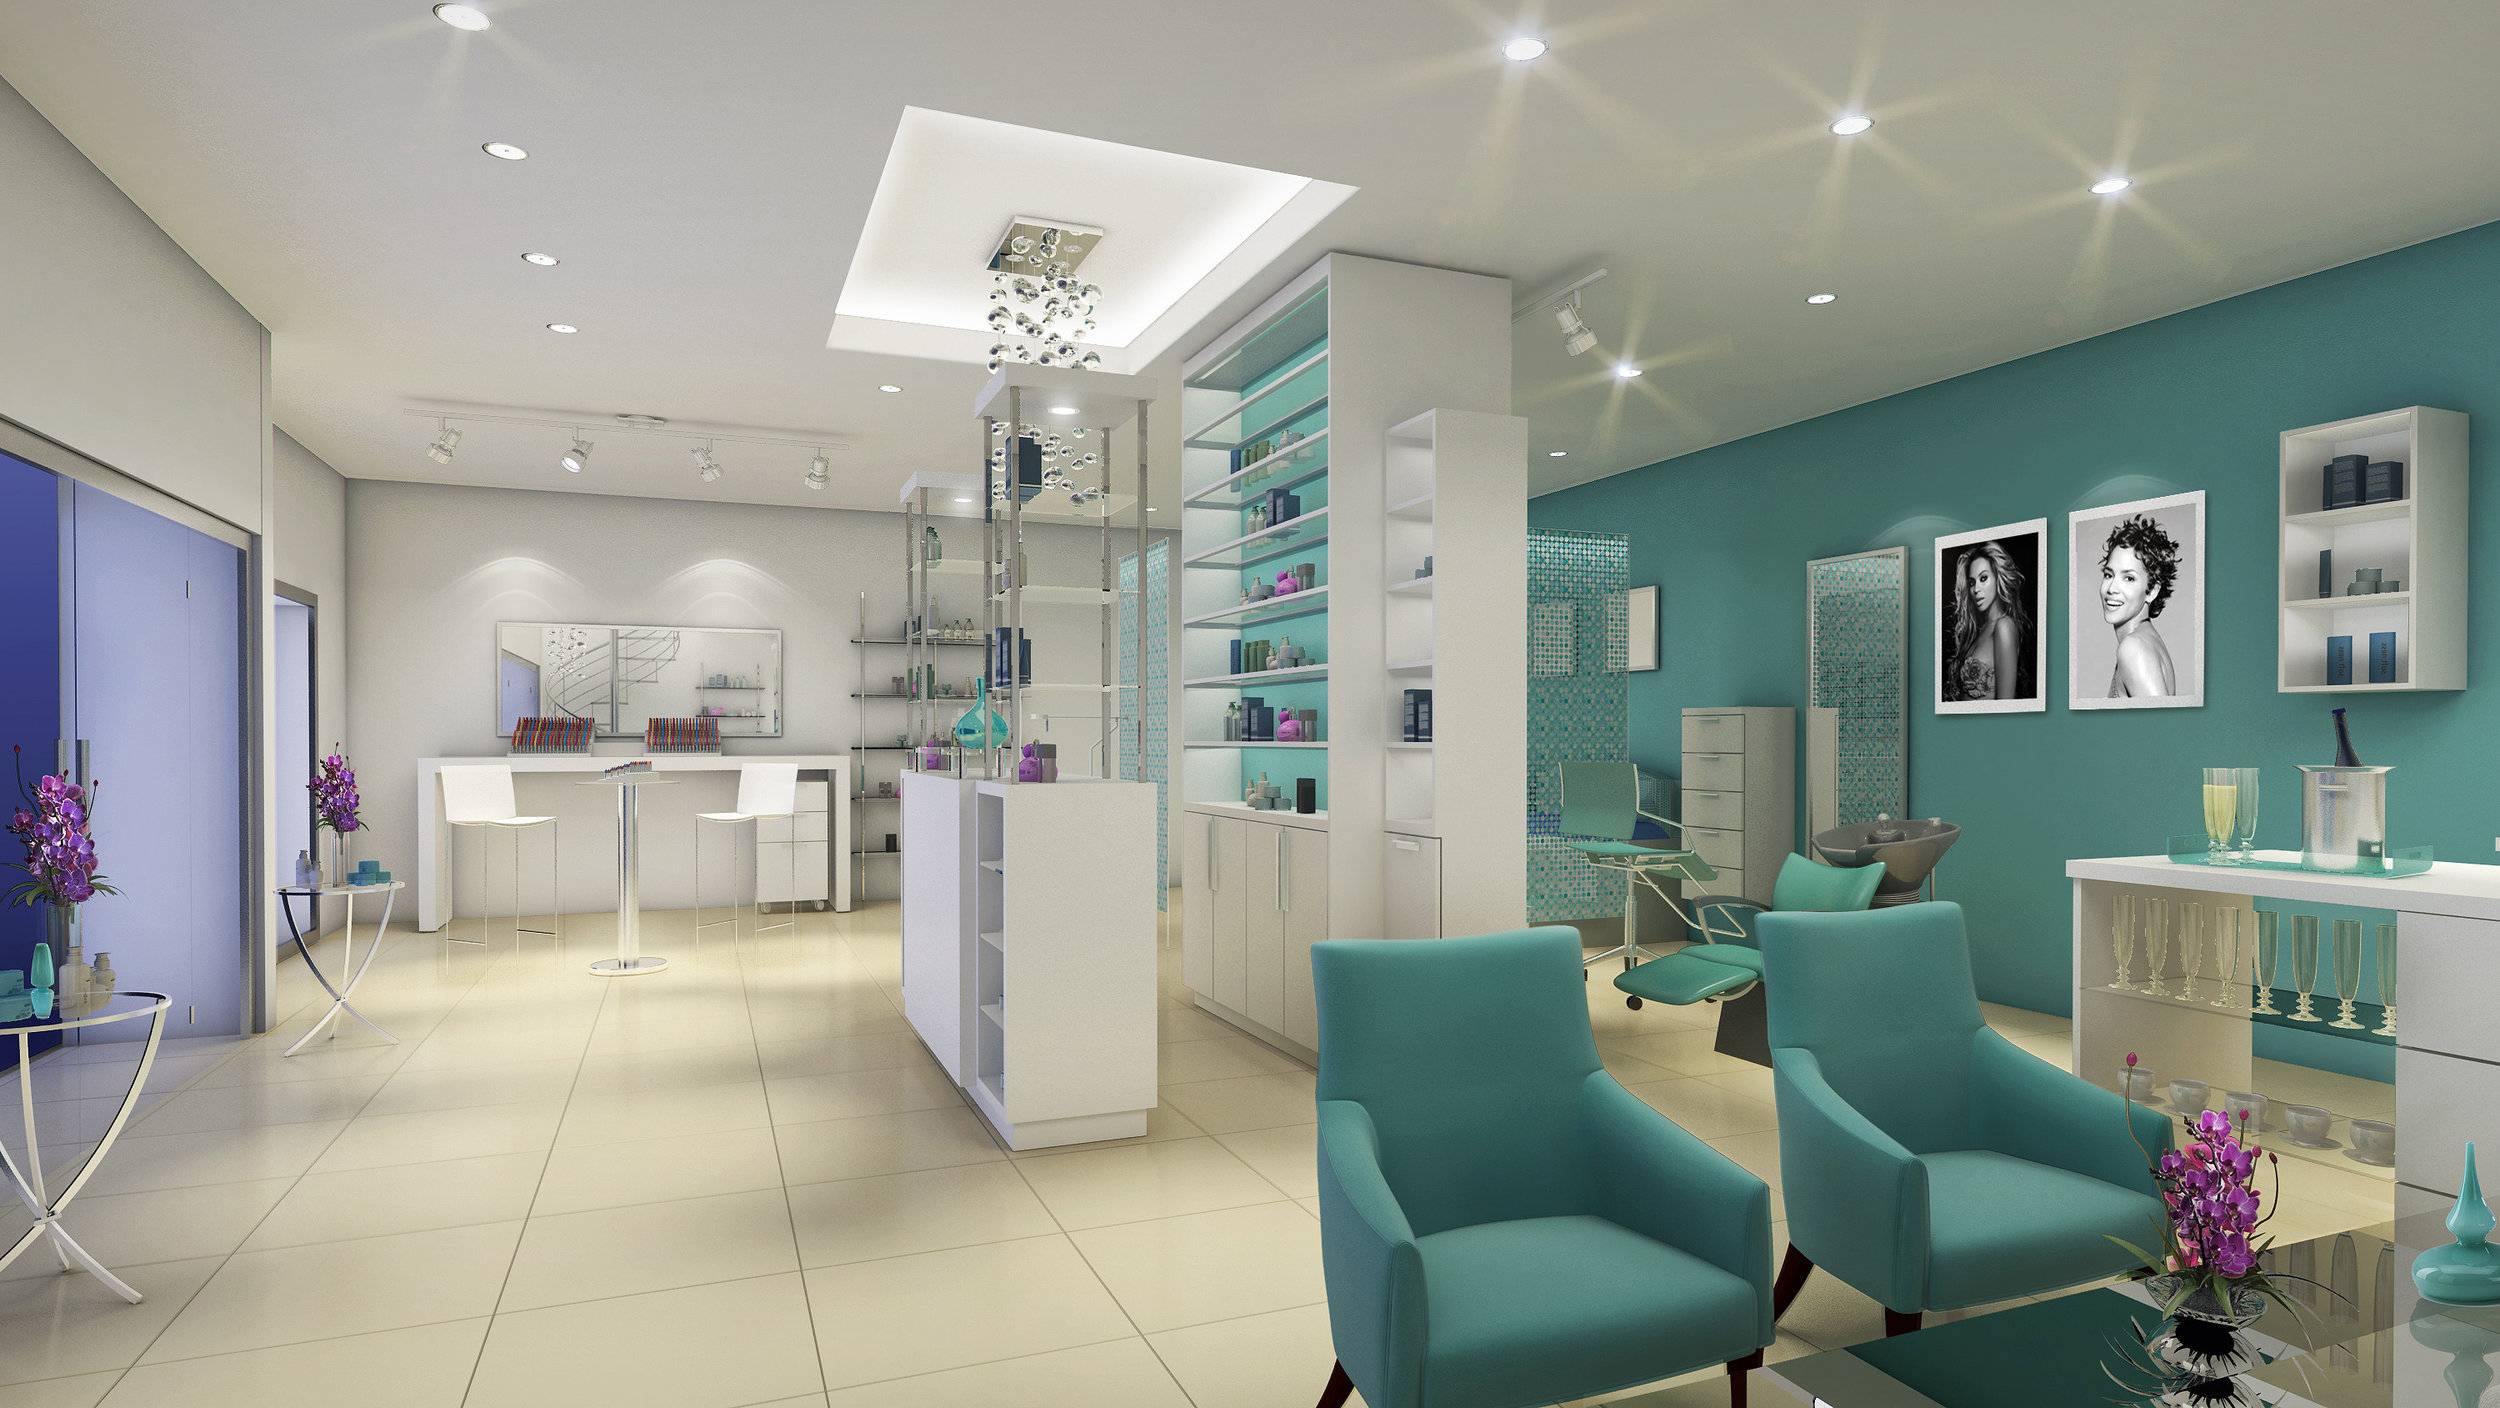 34 - Oasis Salon View 1.jpg